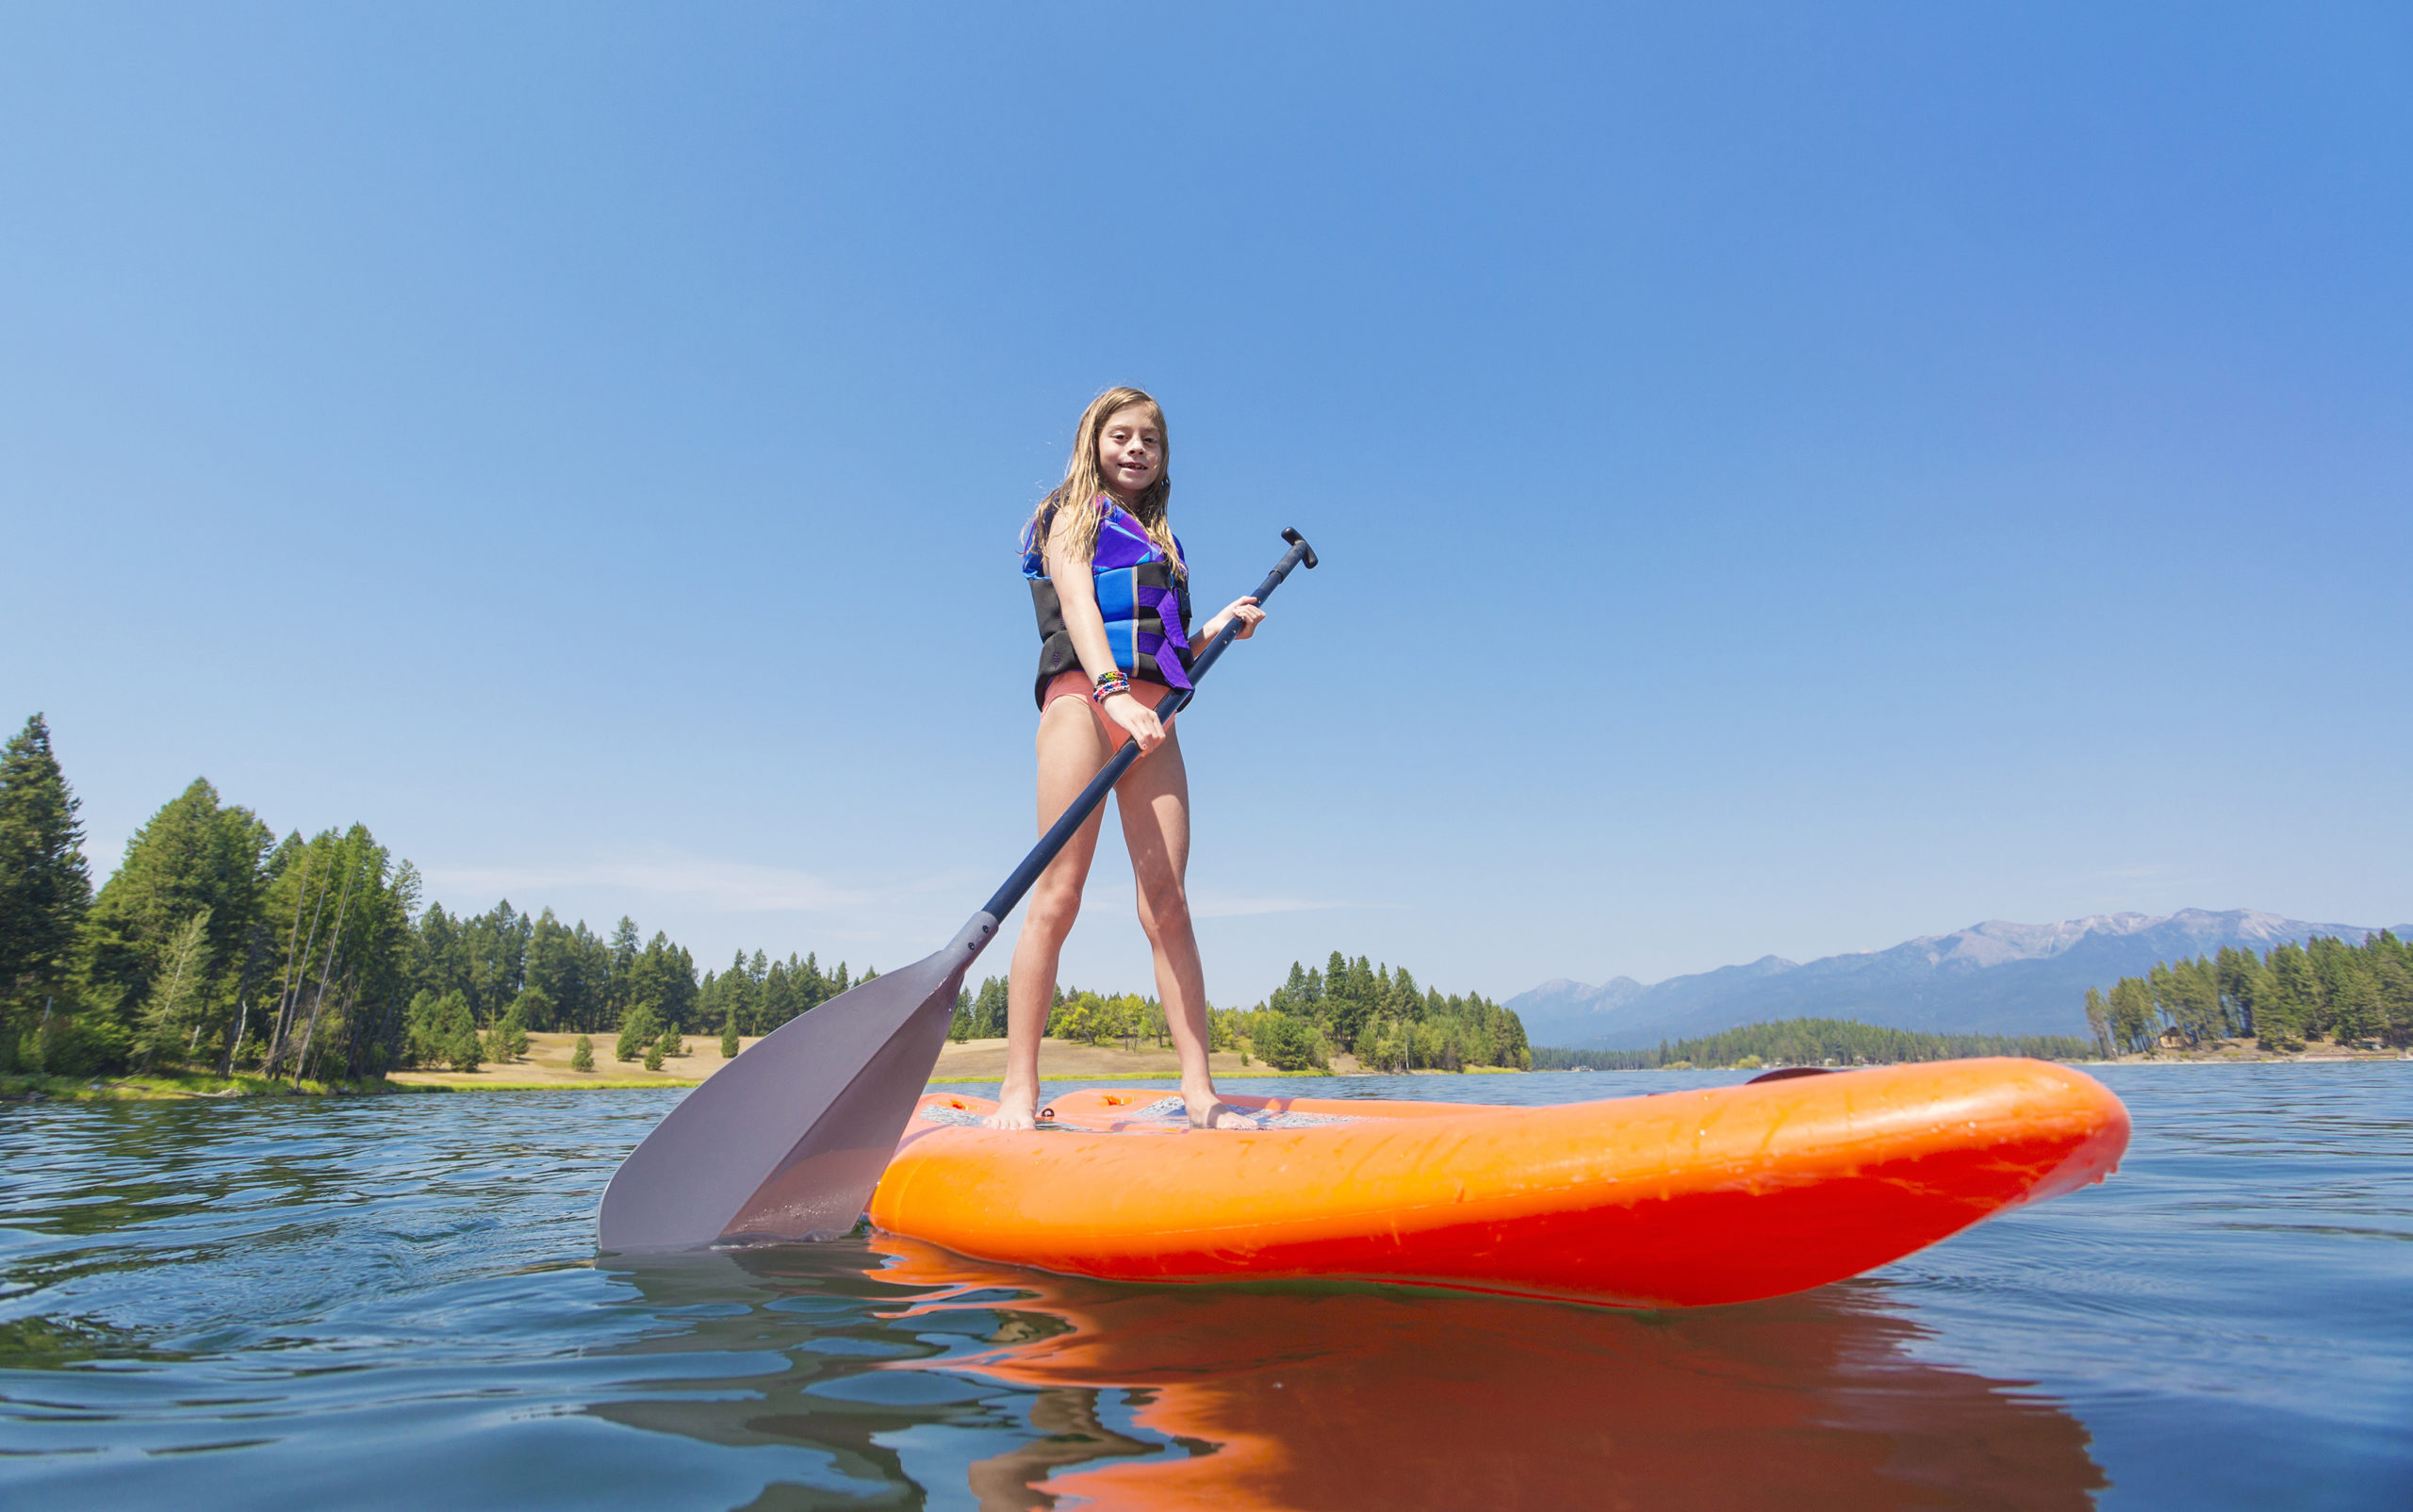 Kid on an inflatable paddleboard on a lake.